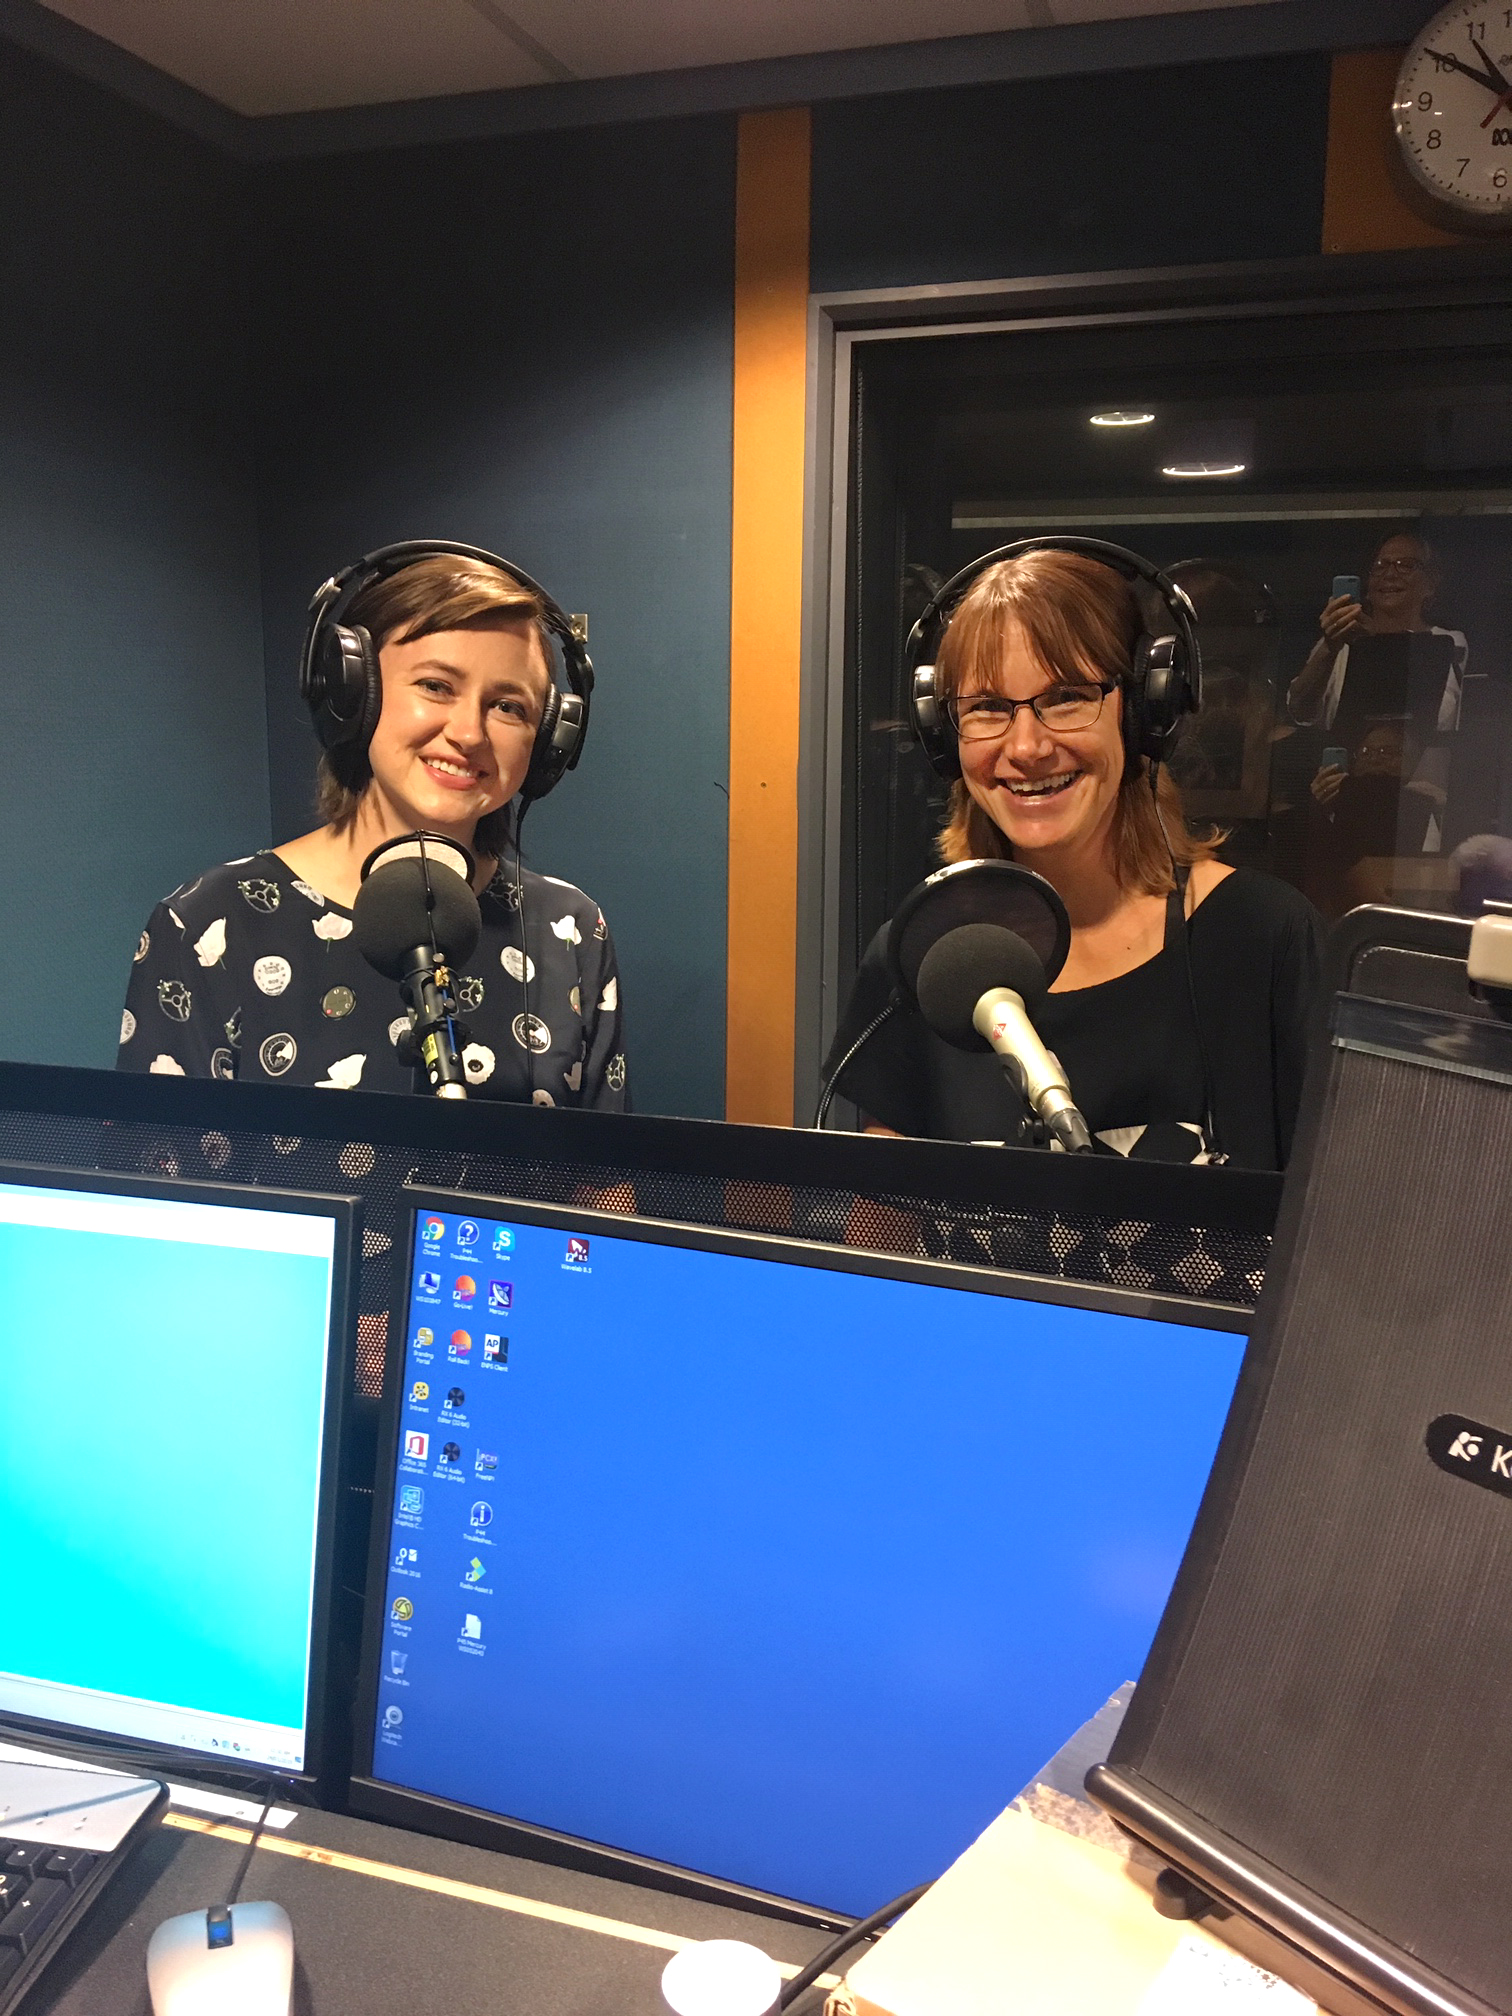 Re-Imagining Calling For Women in the Christian Framework      ABC Radio National: Soul Search   February, 2019  ADM 2017 Senior Research Fellow Dr Meredith Lake, host of  Soul Search , interviewed Katelyn Beaty, speaker at ADM's 2019 School of Theology, Culture & Public Engagement.